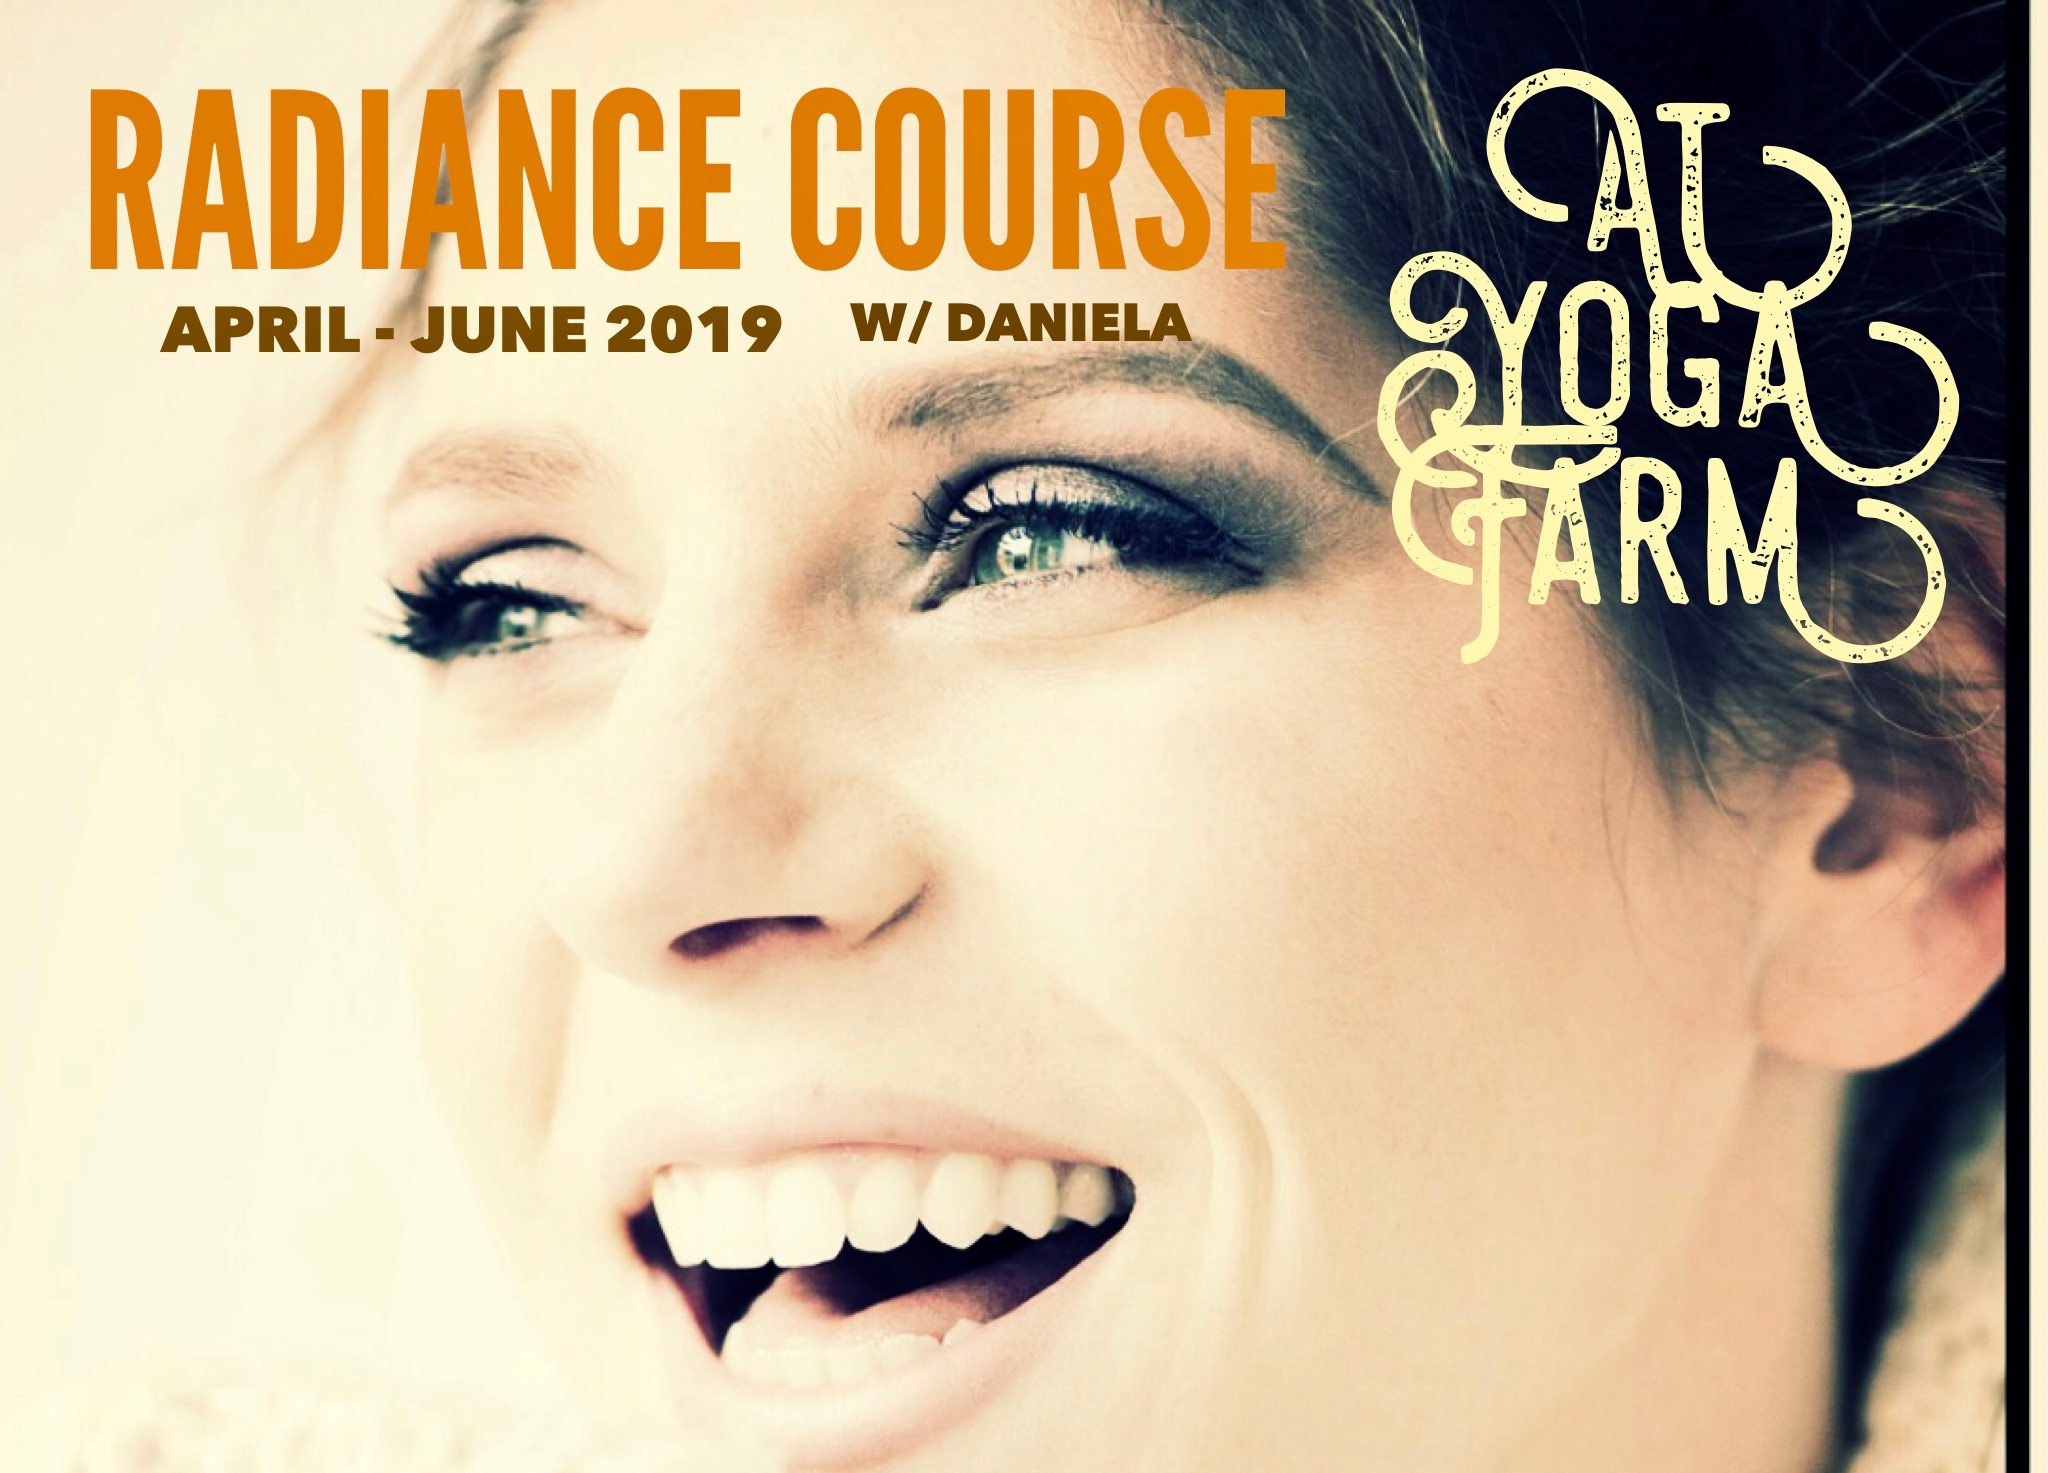 radiance coursE - Radiance course is a 8-week self discovery program, led by Daniela Hess, Director of the School For Radiant Living @ Yoga Farm.The Radiance Course is an adult educational system designed for the student who yearns to feel the fulfillment of Connection, Purpose, and Awe in ones life and in relationships.As a result of your participation in Radiance Course curriculum, you'll experience high quality self care. You will feel deeply nourished, refreshed, connected with others, and learn effective and personalized practices that lead to a Joyful body, a Clear mind and Lightness of Being.Starts Again Fall, 2019